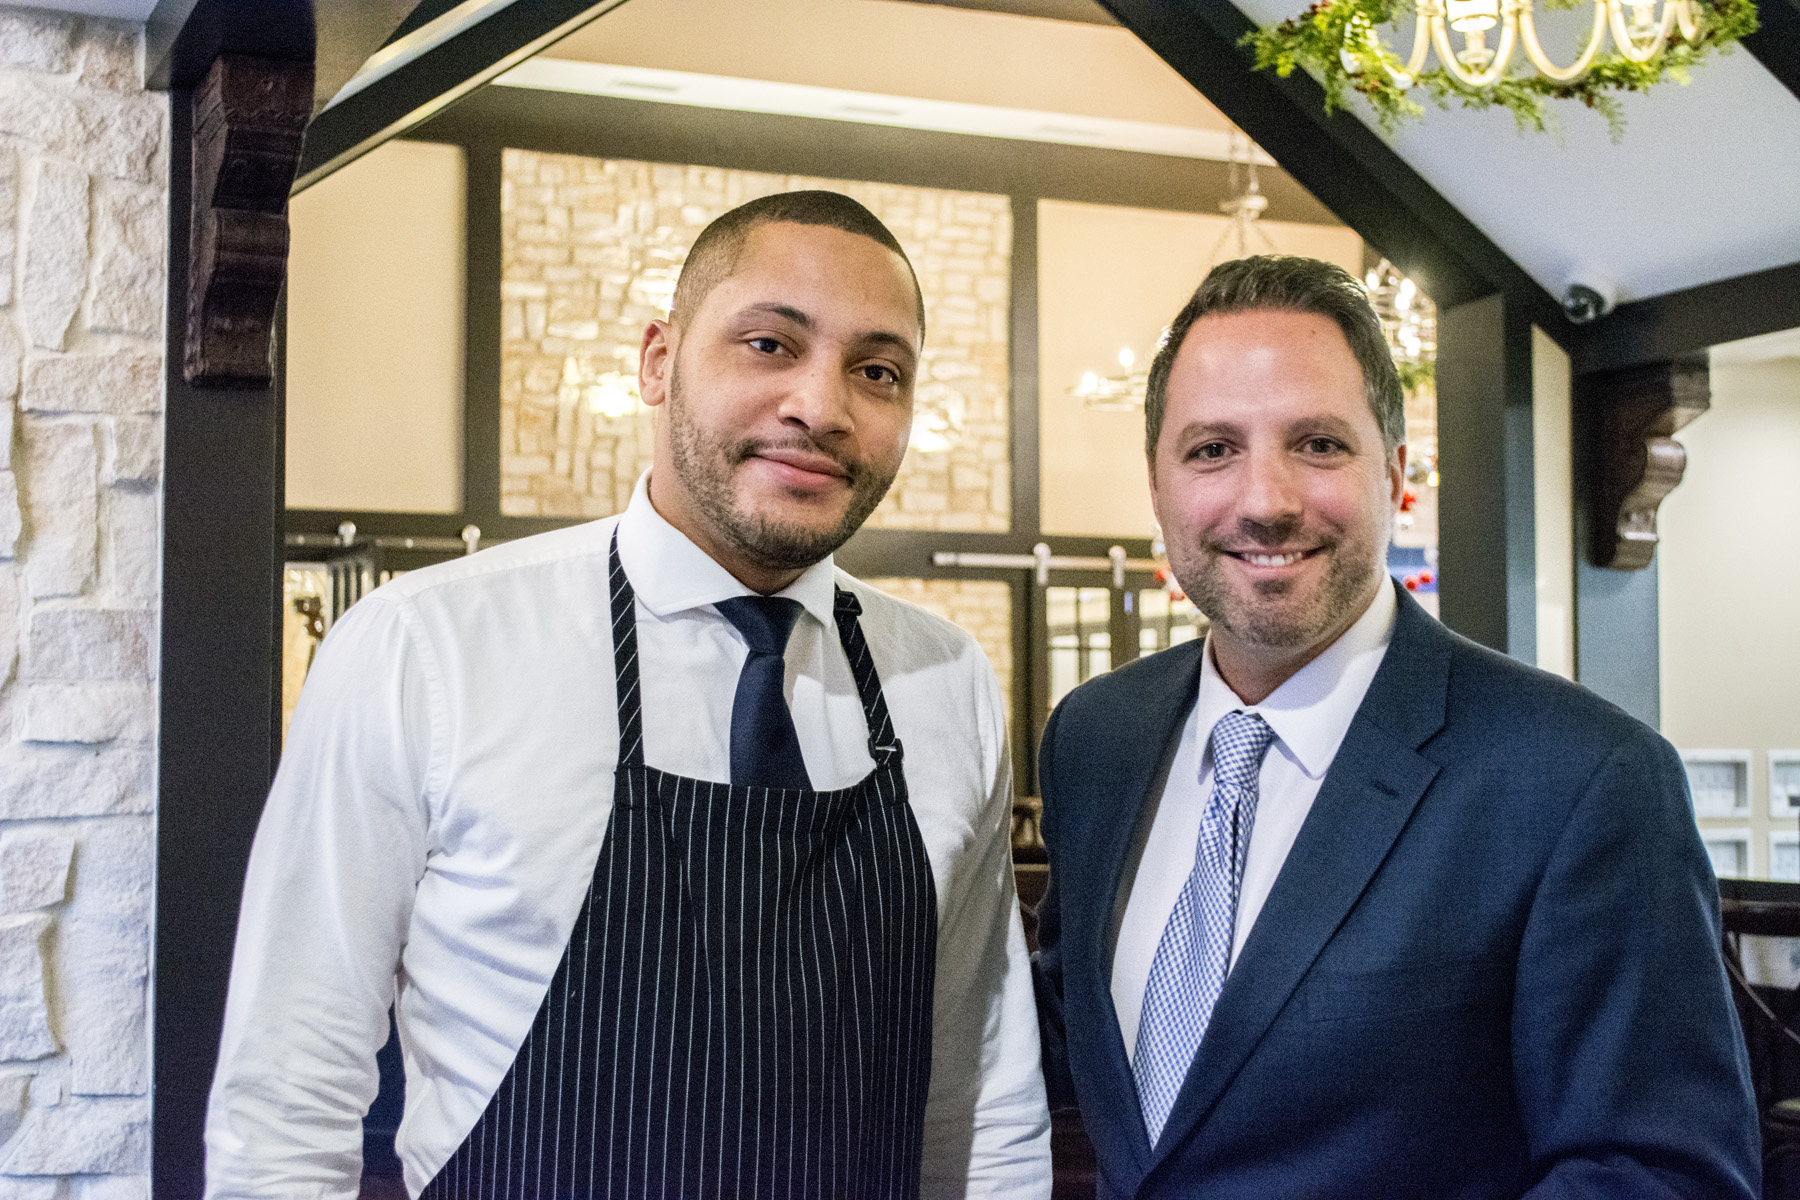 Vincent Lorusso, right, a floor manager at Matteo's, which is participating in Spring DineHuntington Restaurant Week.   Long Islander News photos/archives